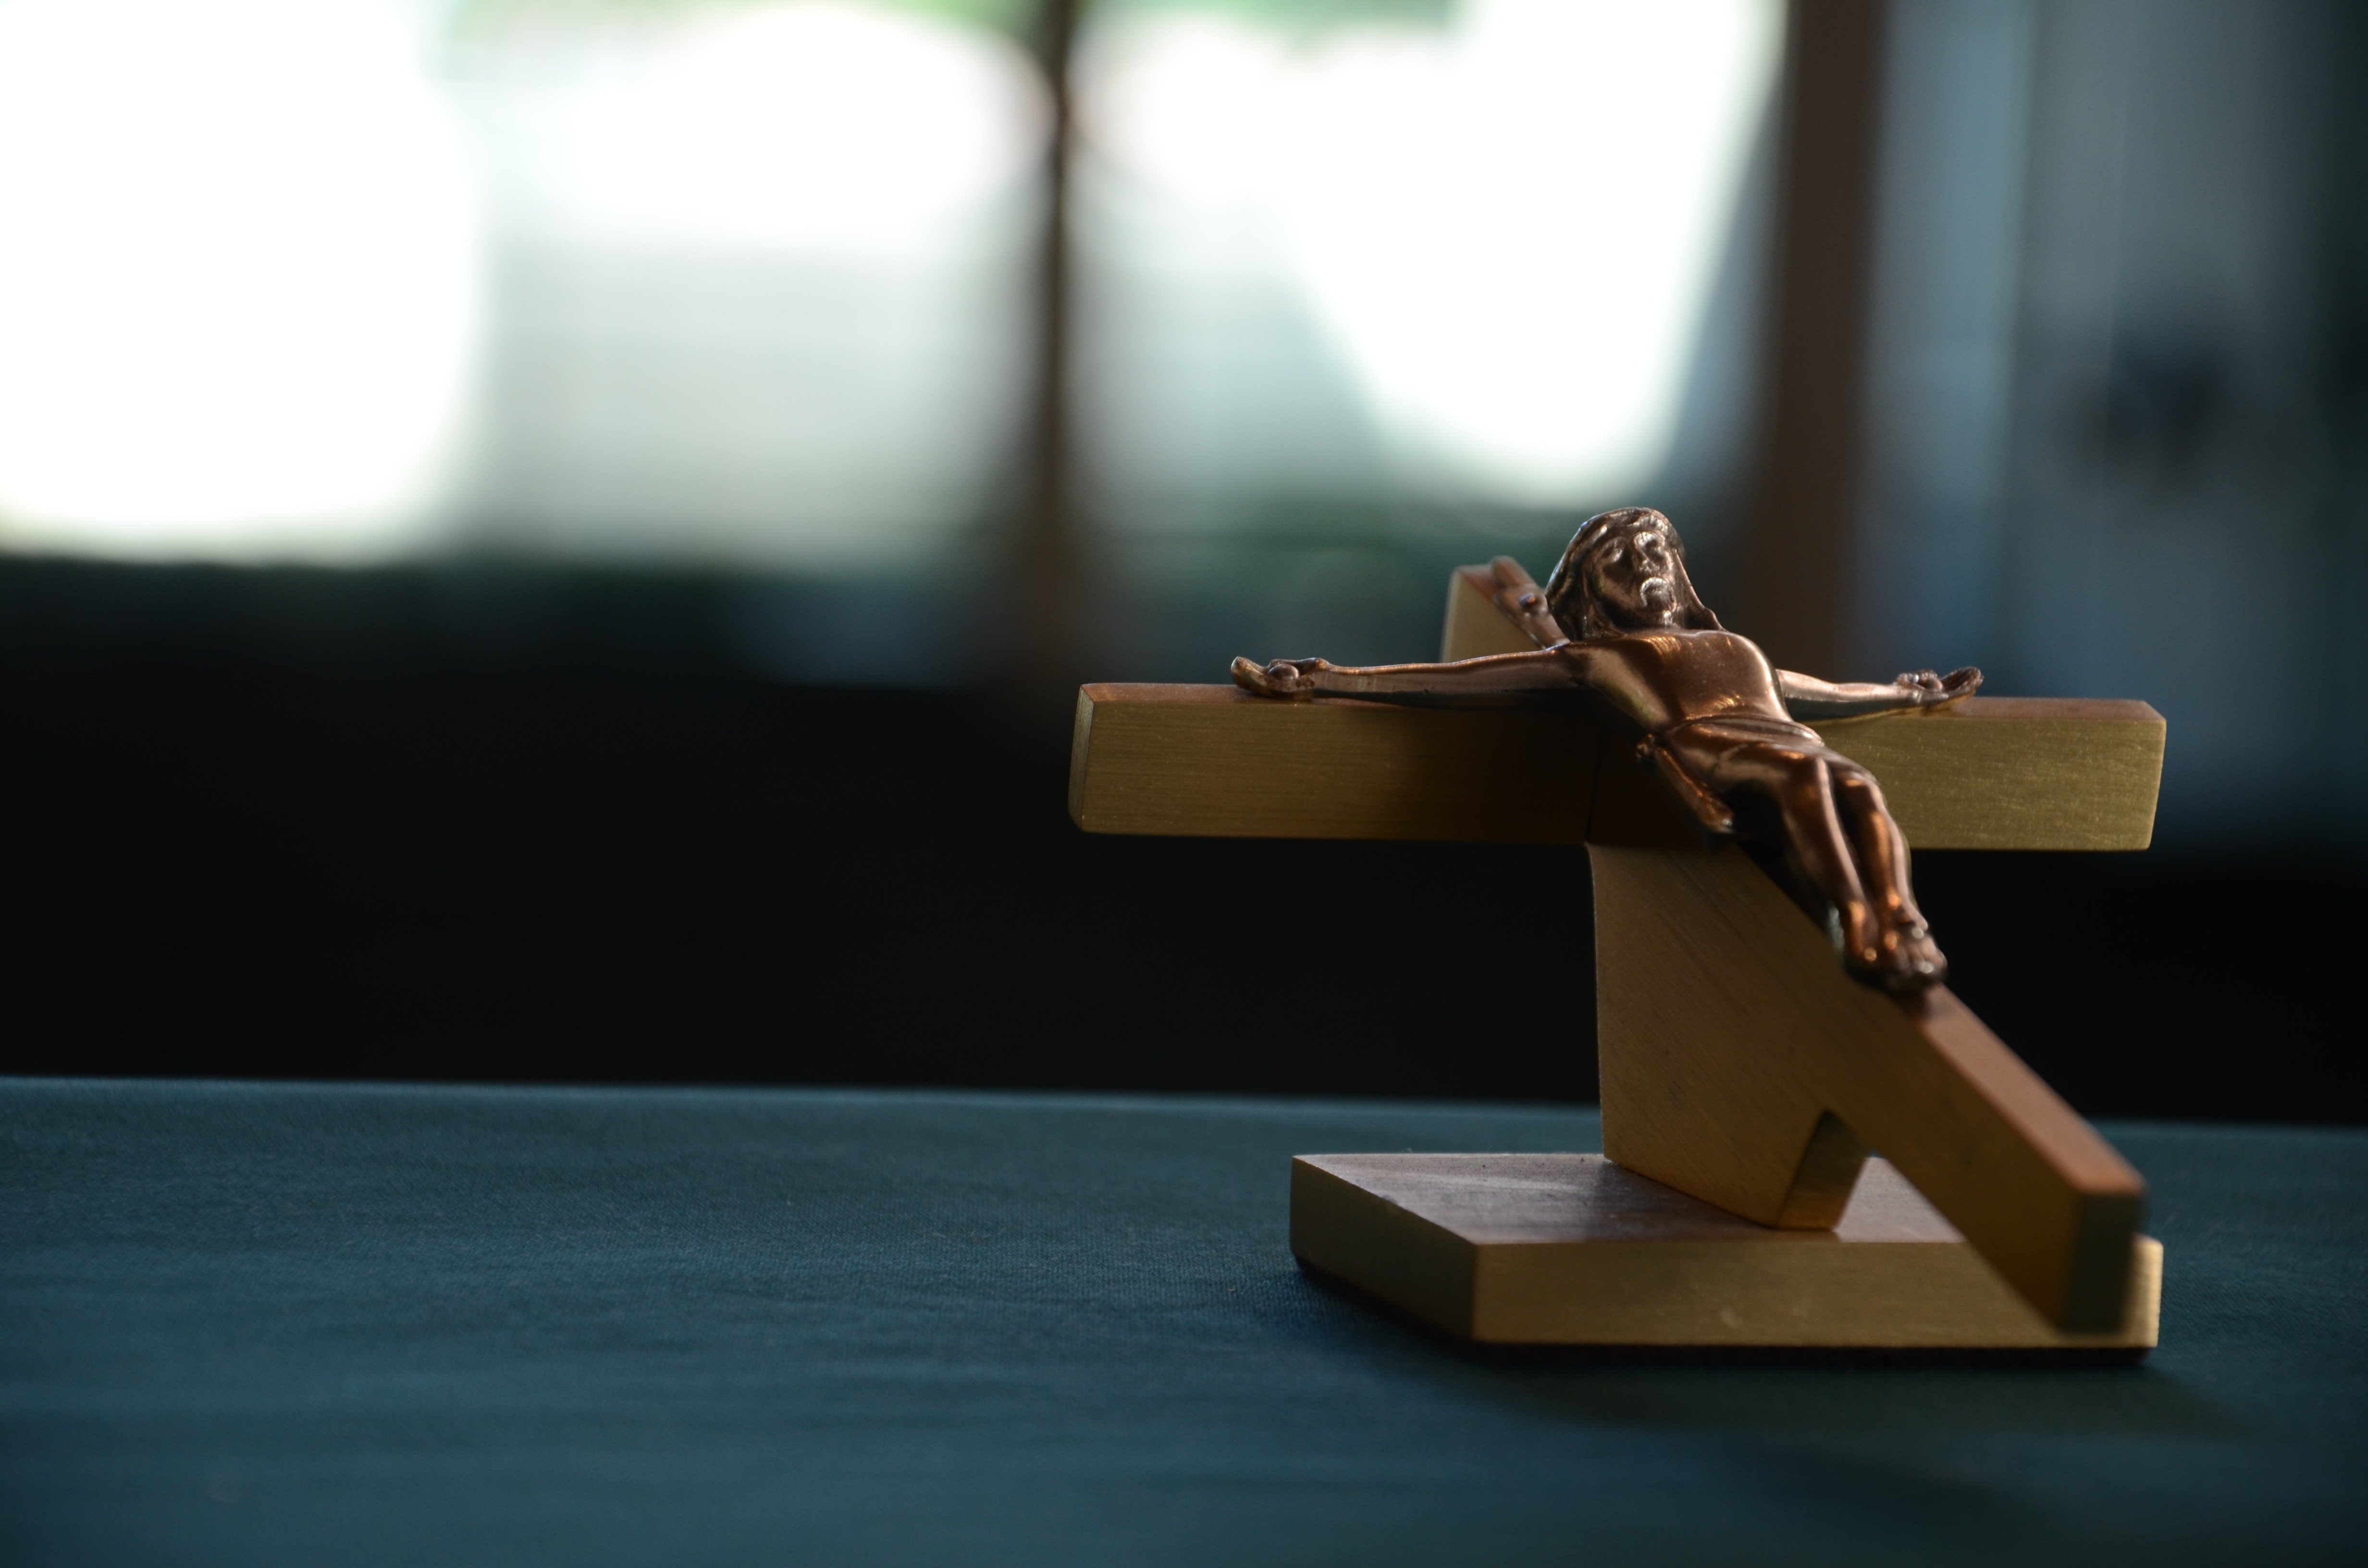 Crucifix on a stand